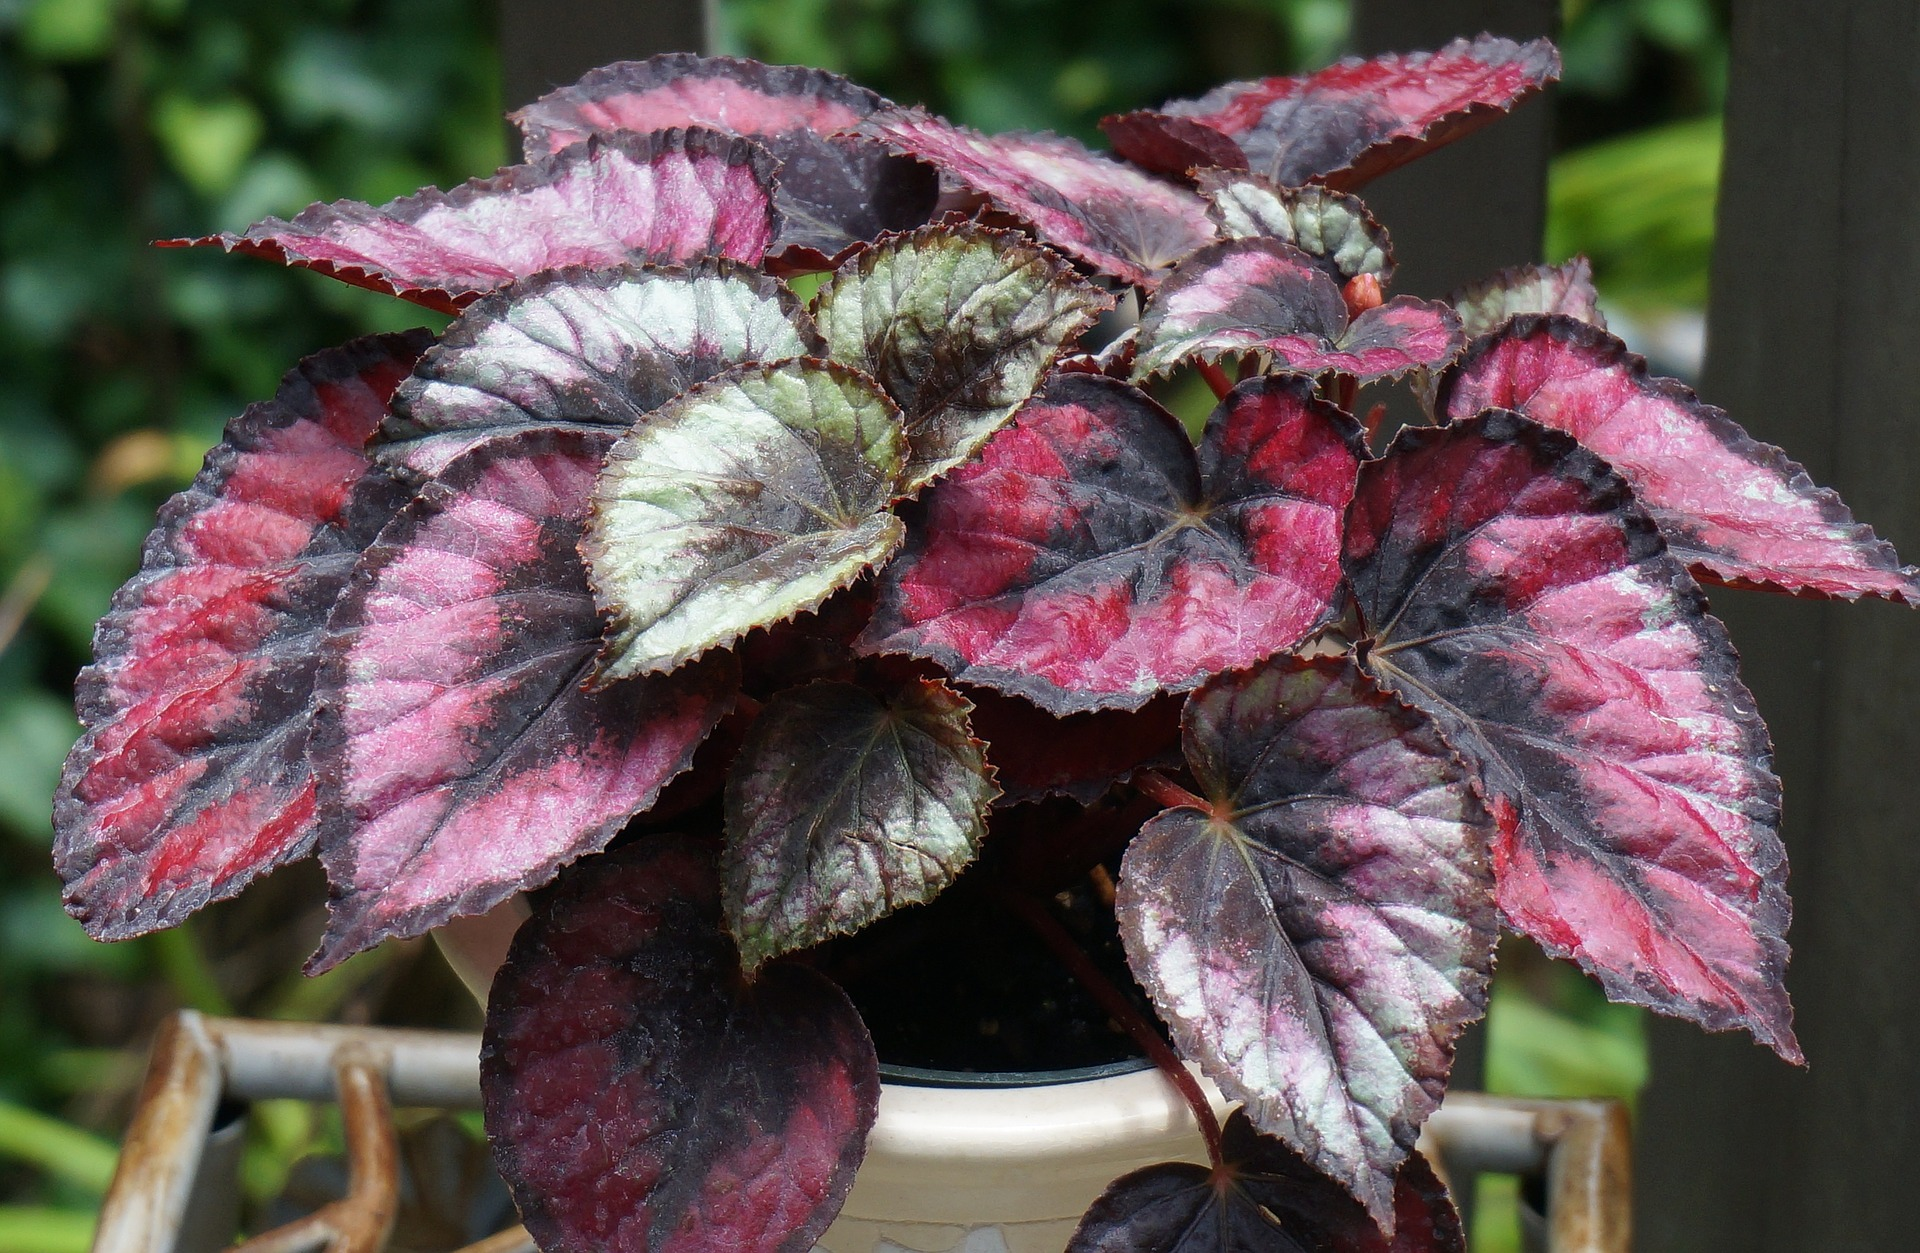 'Red Kiss' Rex begonia. Rex begonias love filtered light and I add them to the shade garden. They go into a spare room where the heat is turned off and the morning light is filters through. I water every other week, very lightly in the kitchen sink, letting them drain over night.